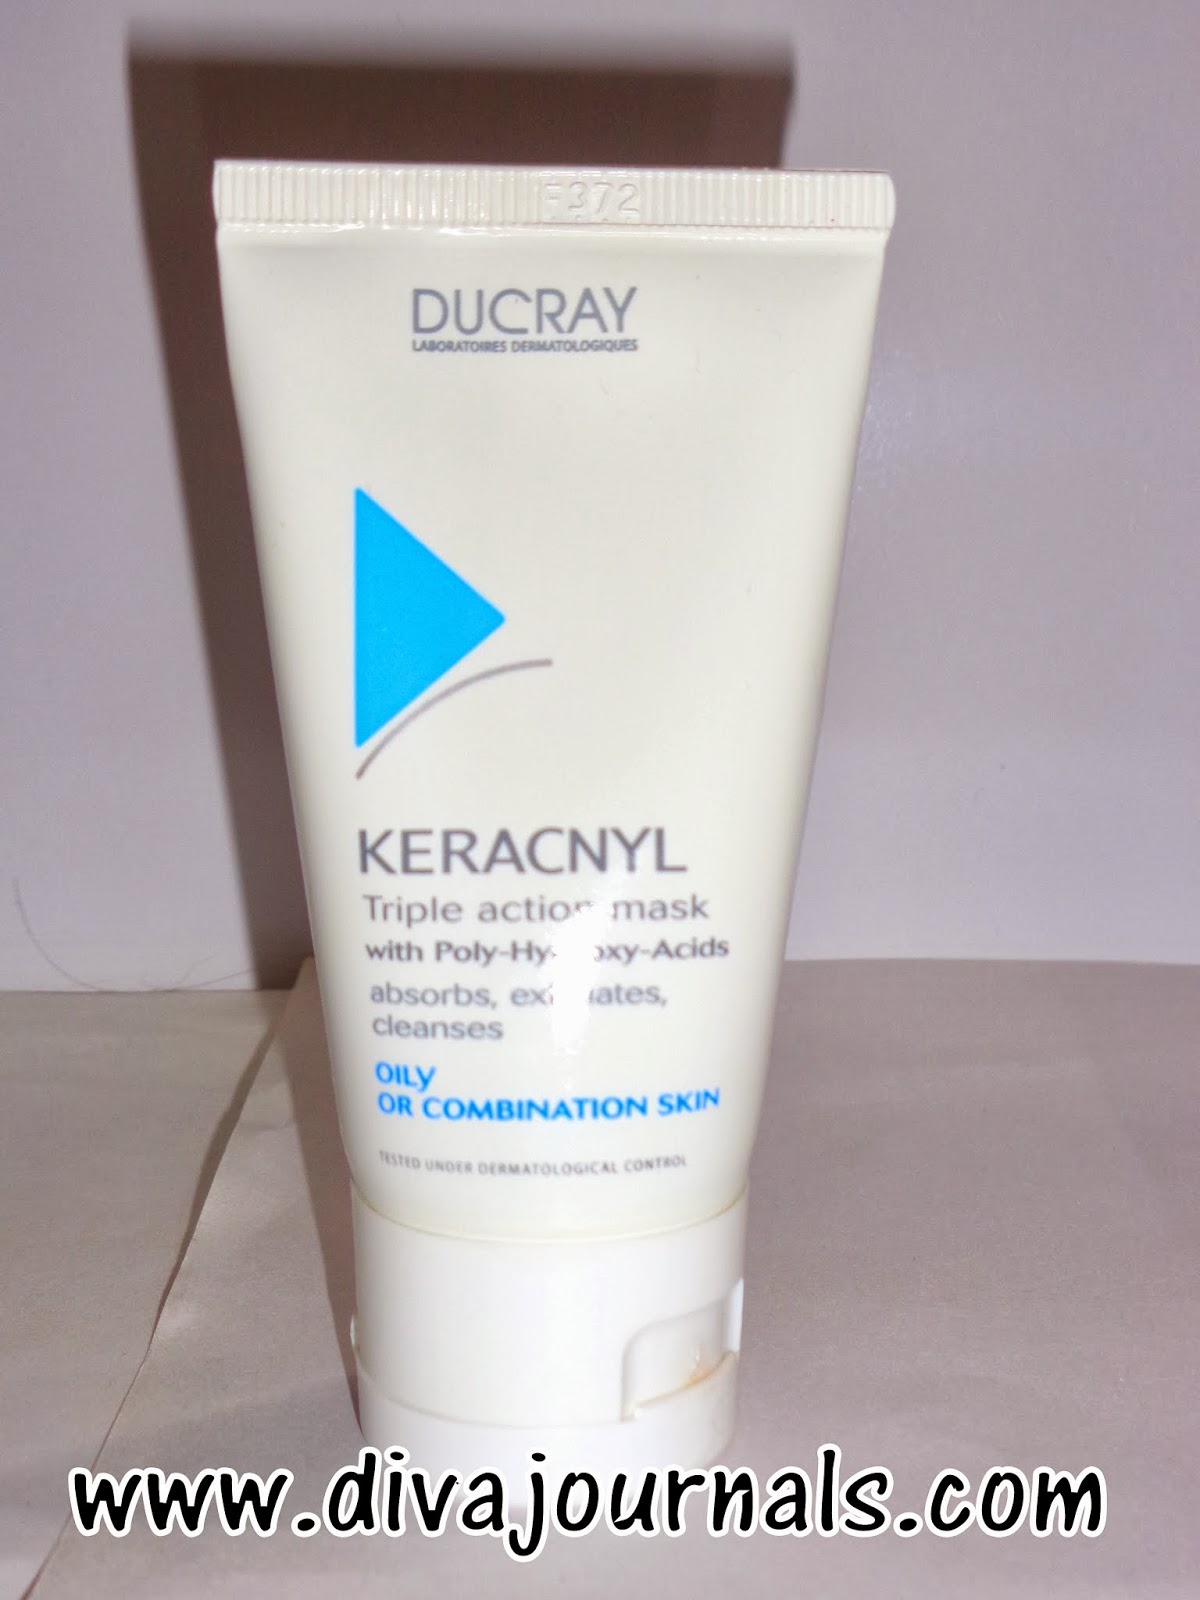 3)Ducray Keracnyl Triple Action Mask